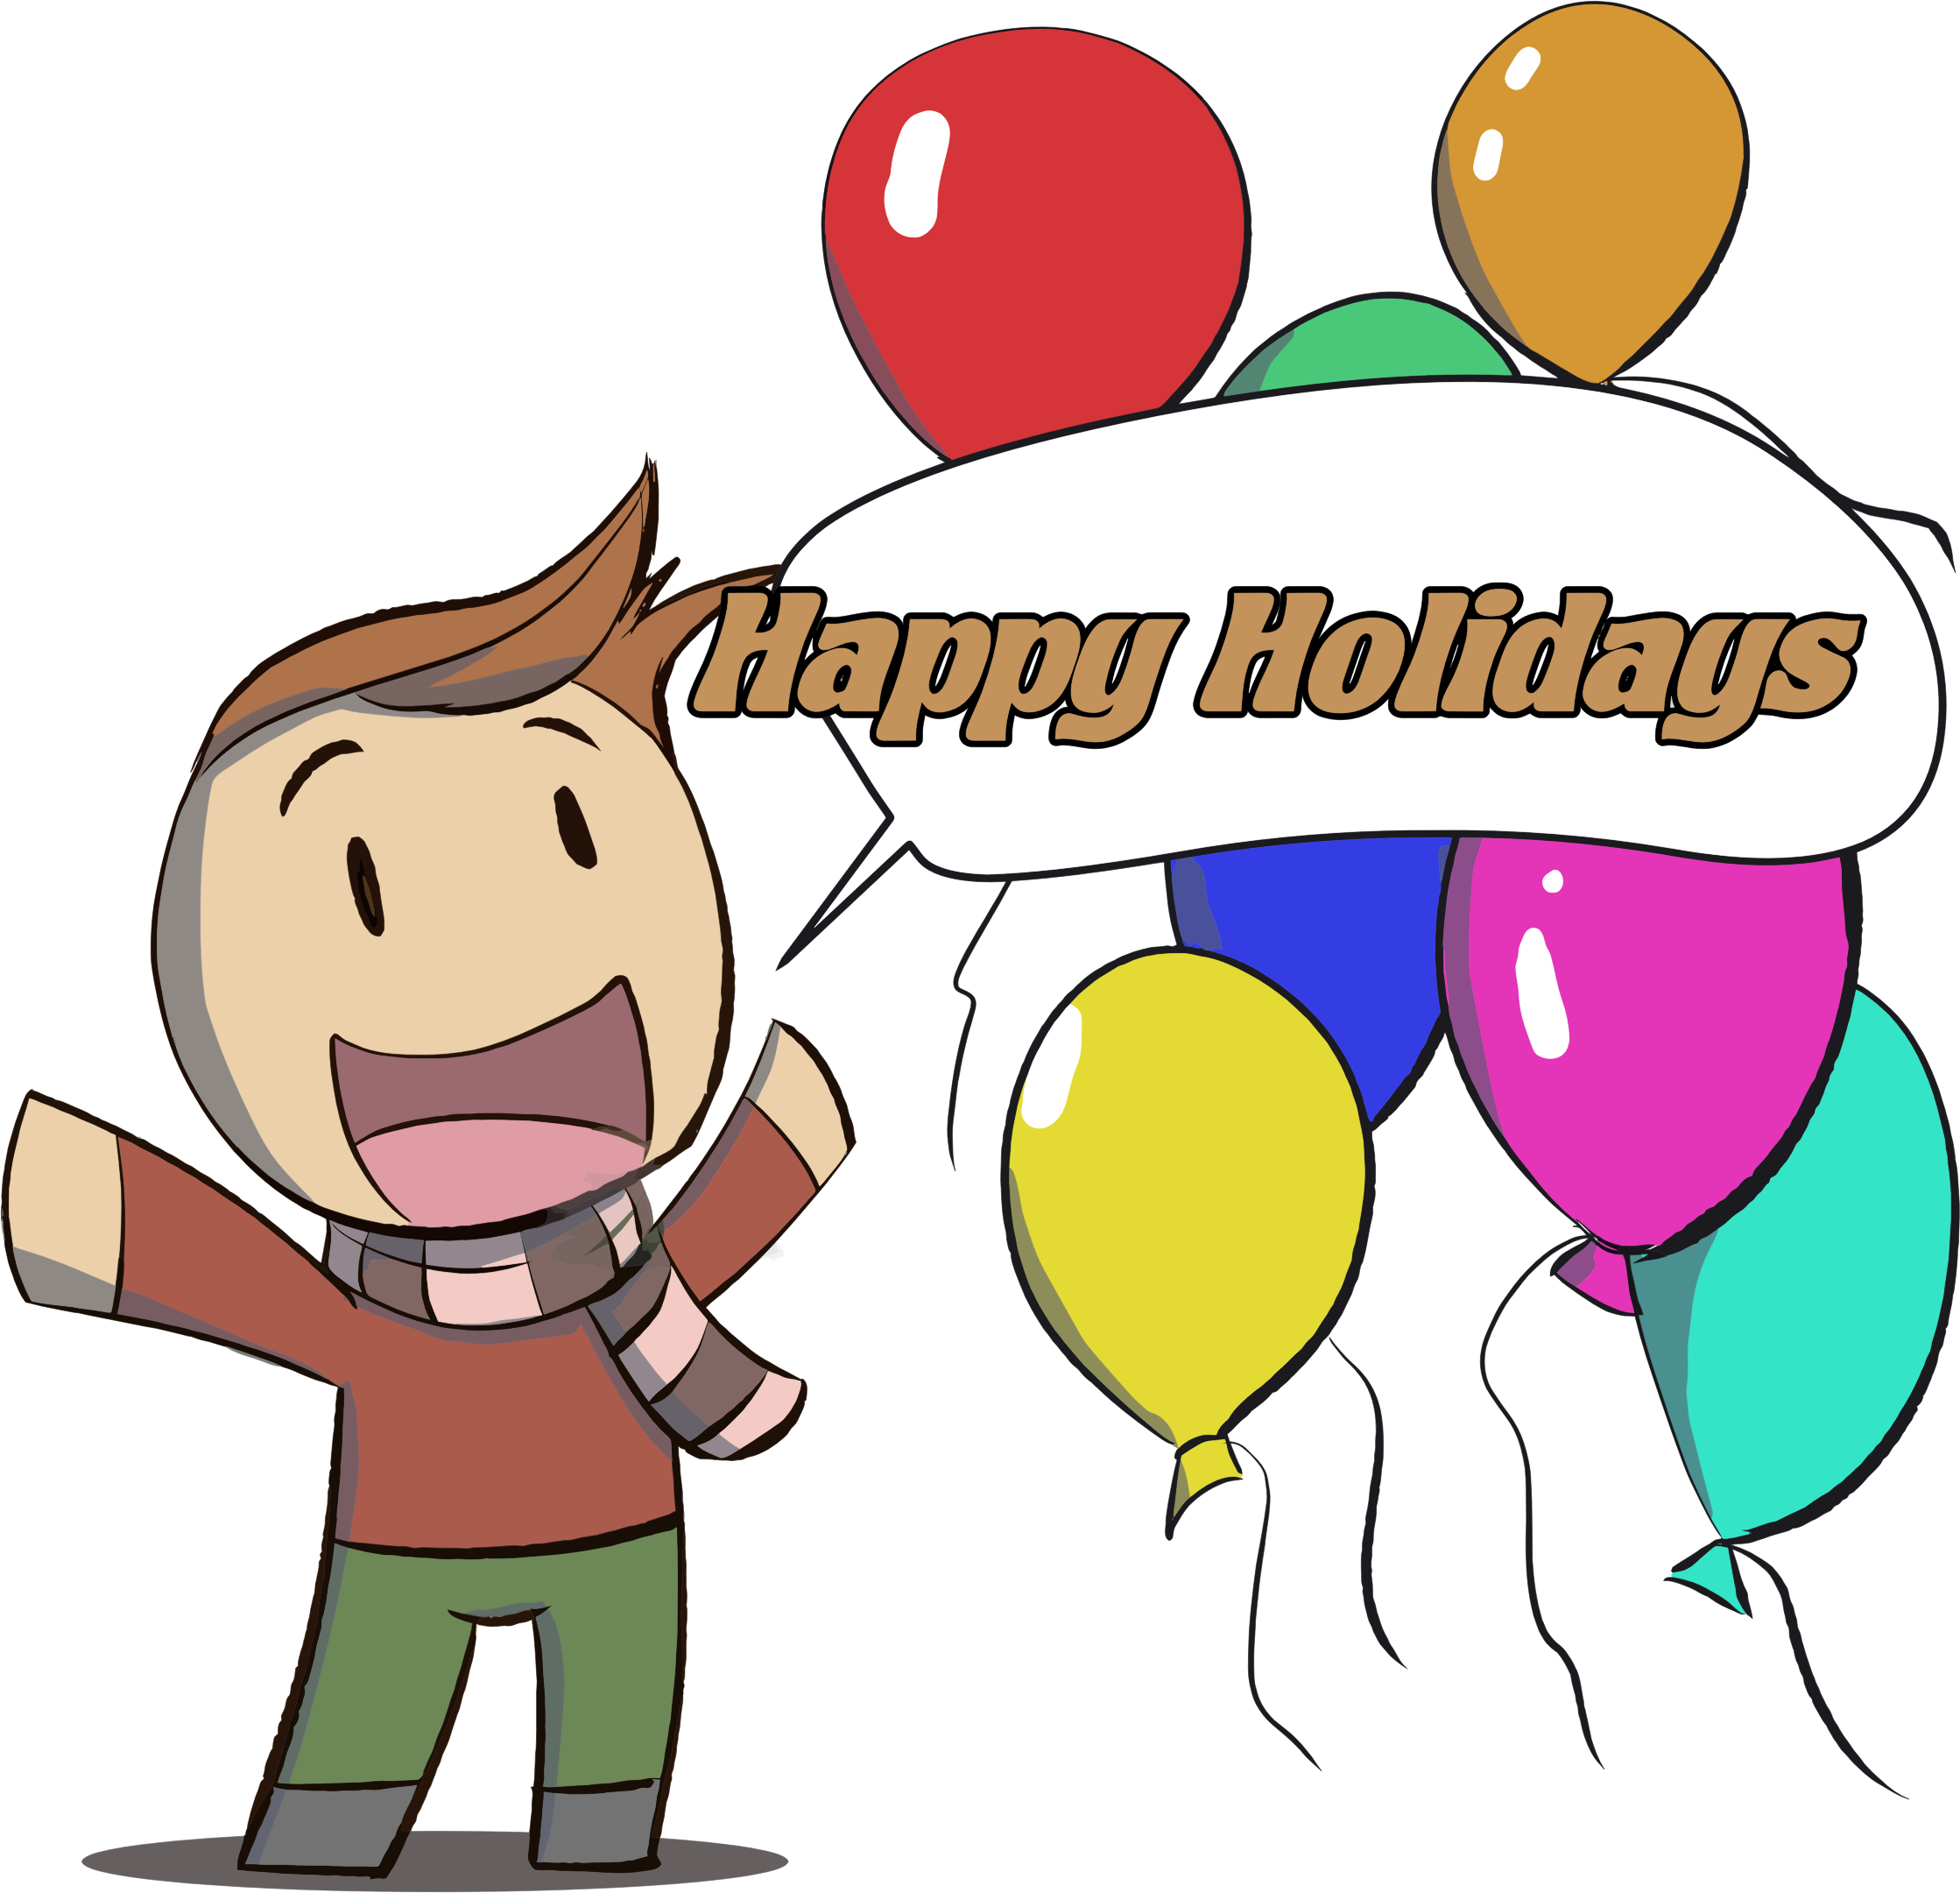 Holidays clipart thing. Happy man big image